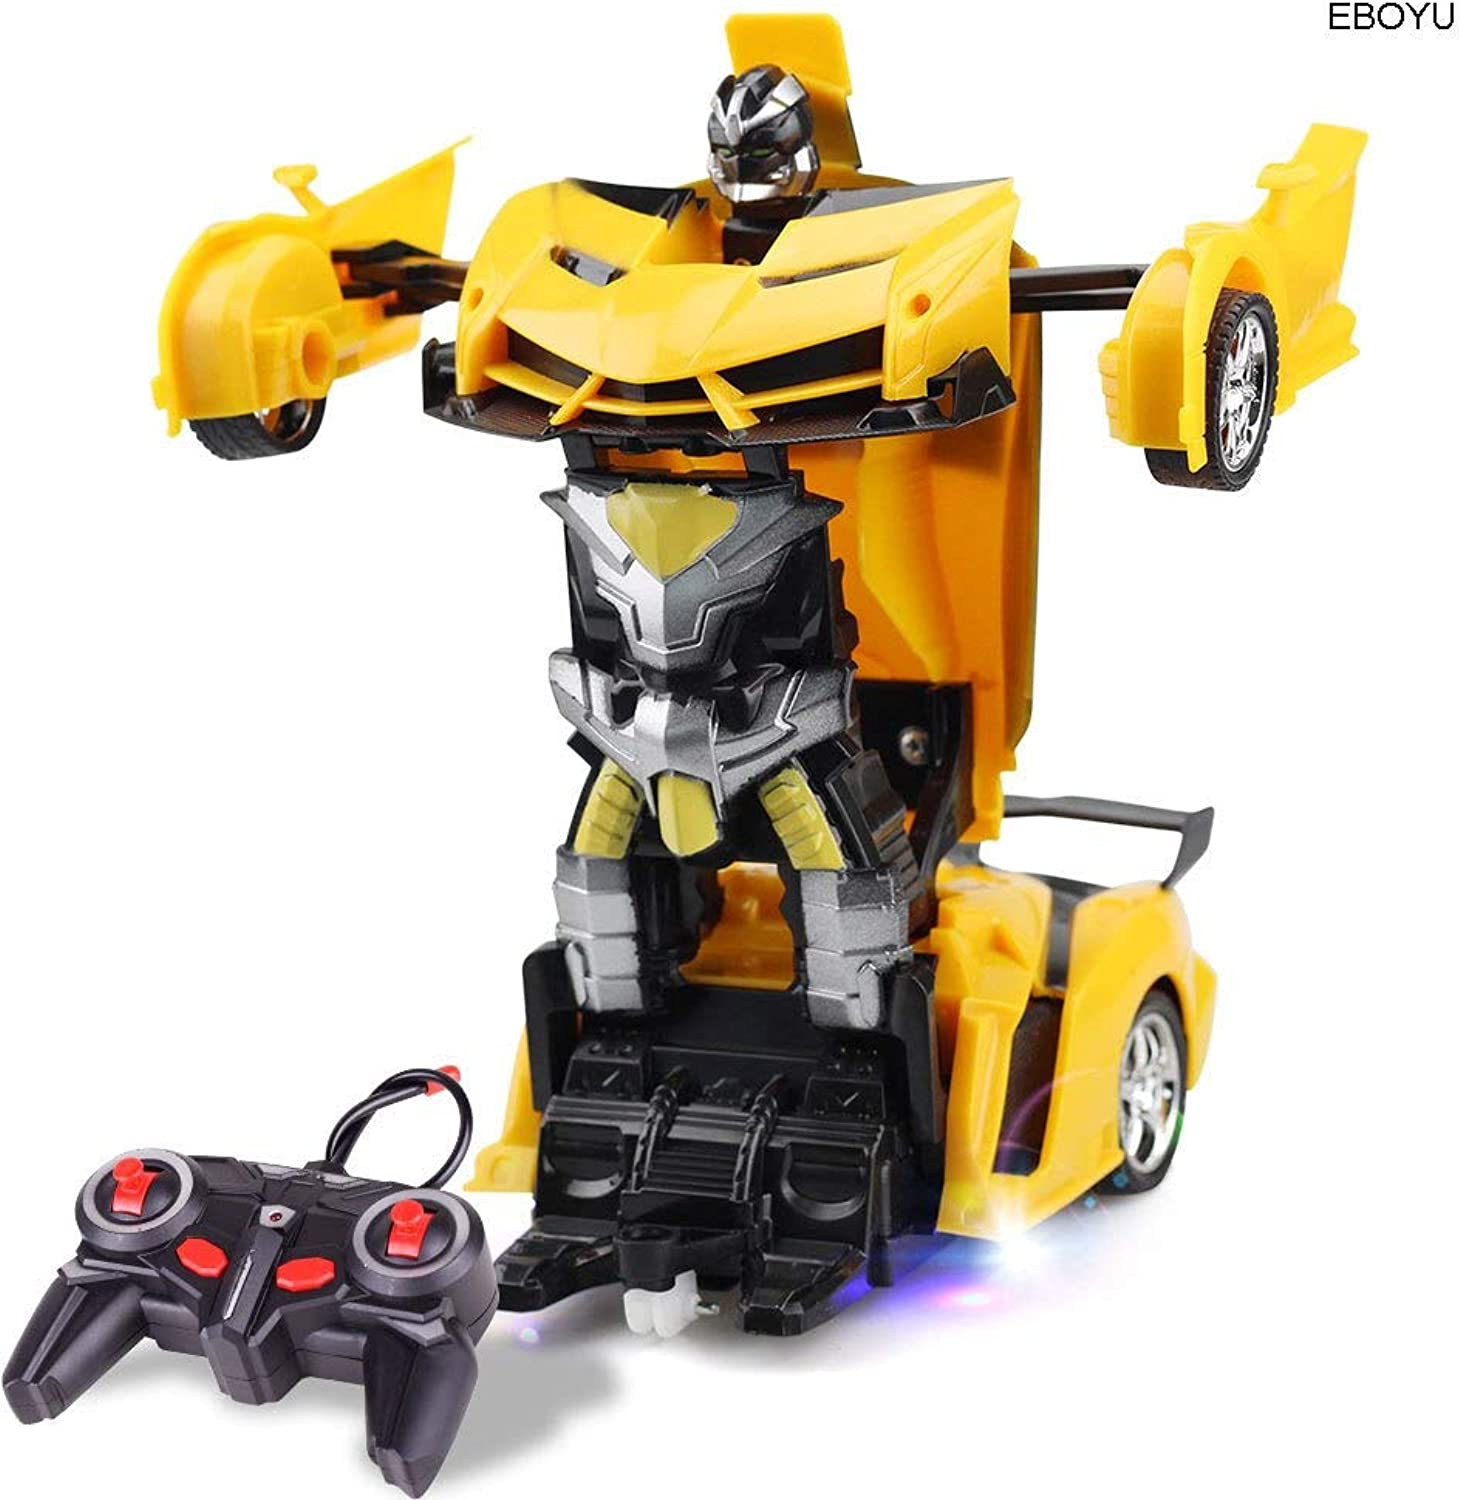 Generic EBOYU RC Transformer 2 in 1 RC Car Driving Sports Car Drive Transformation Robots Models Remote Control Car RC Fighting Toy Gift Yellow